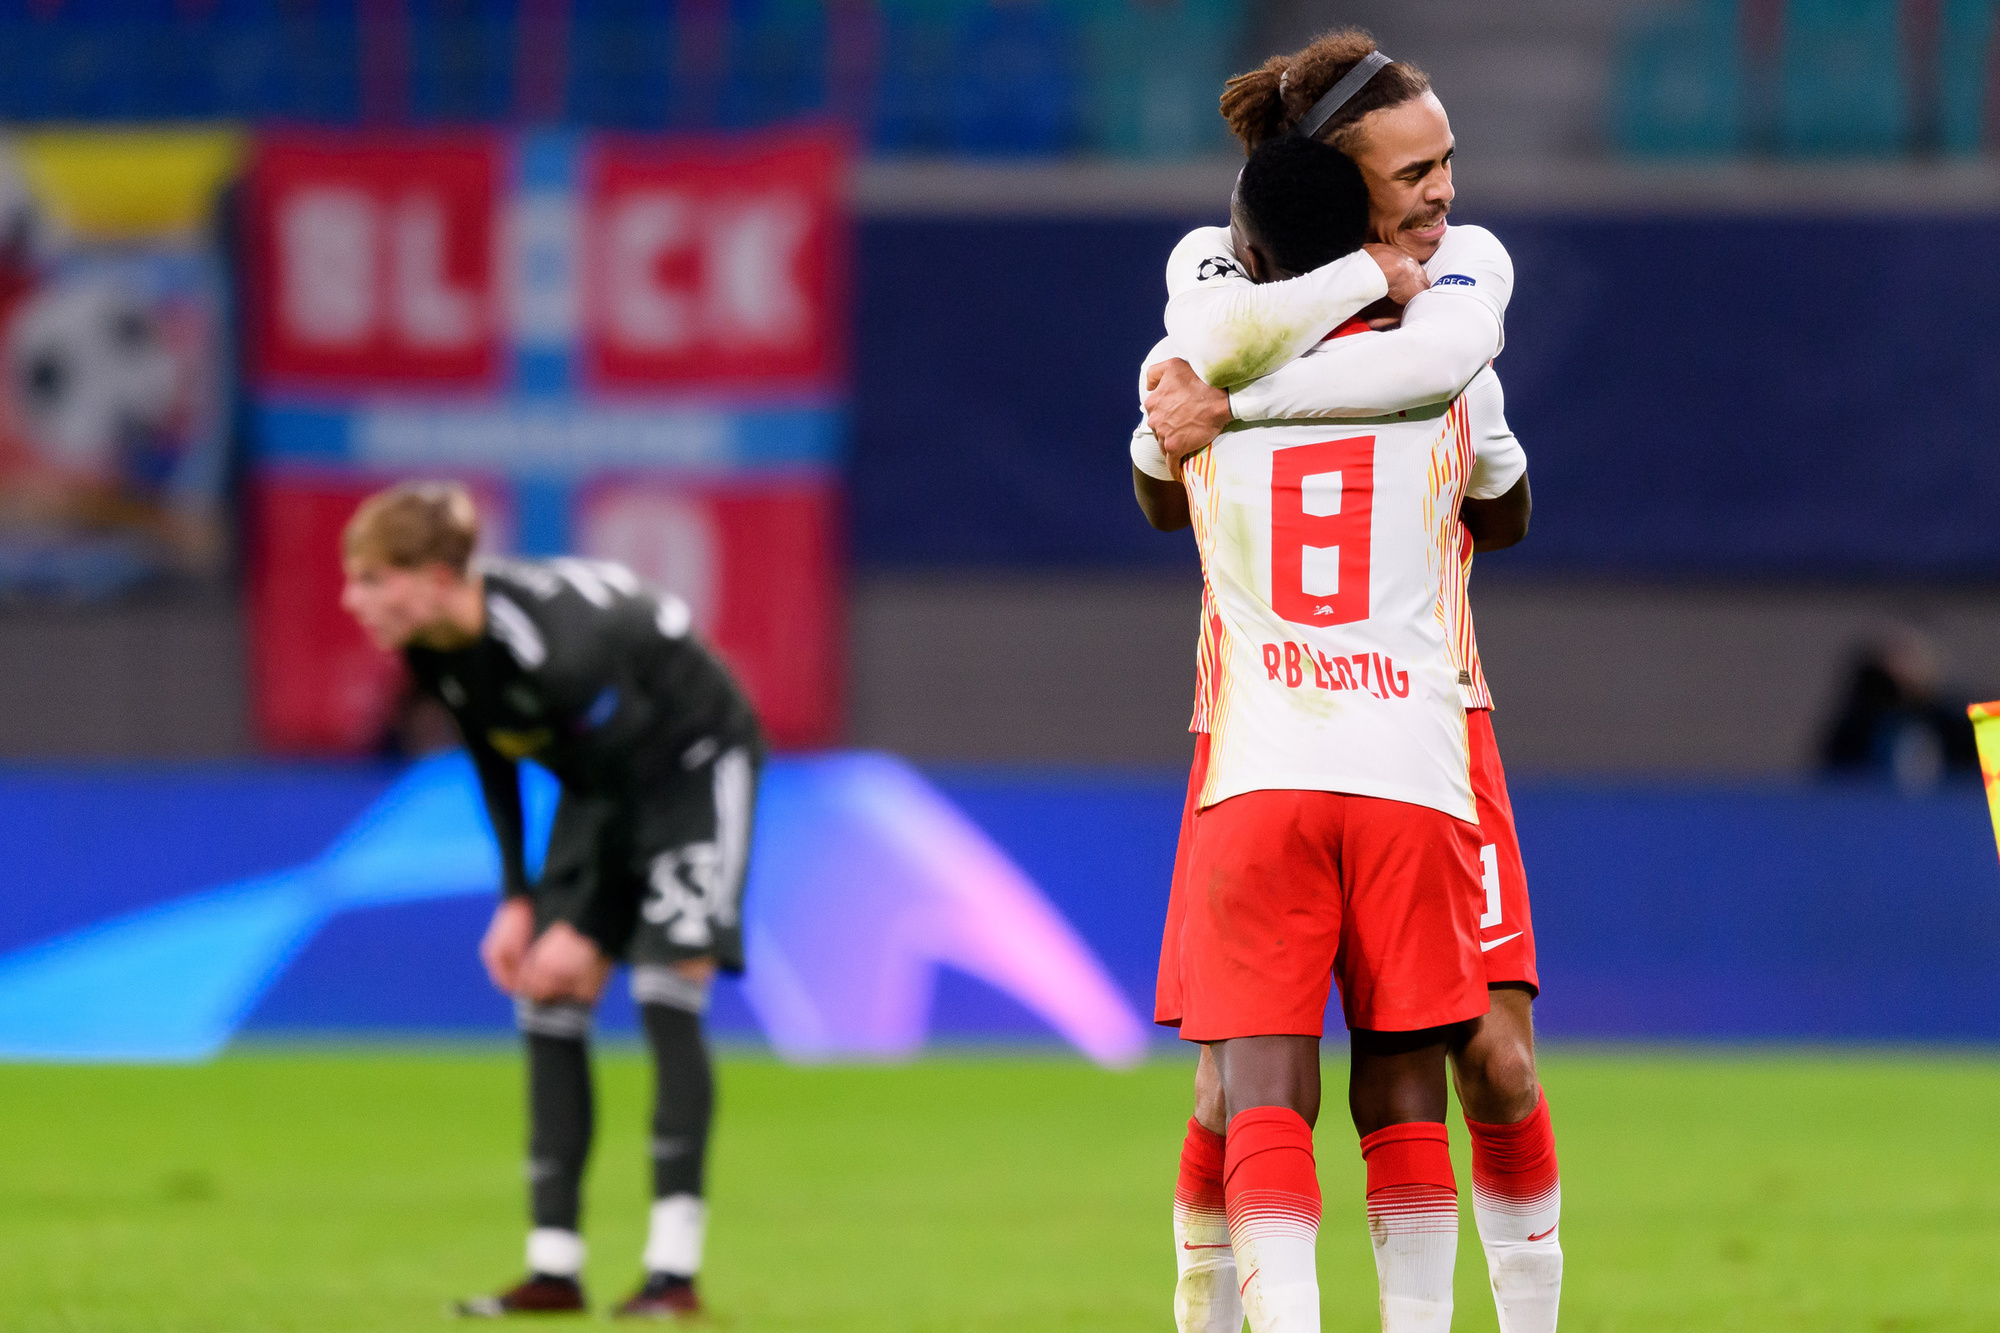 Leipzig was te sterk voor United in de Champions League, GETTY